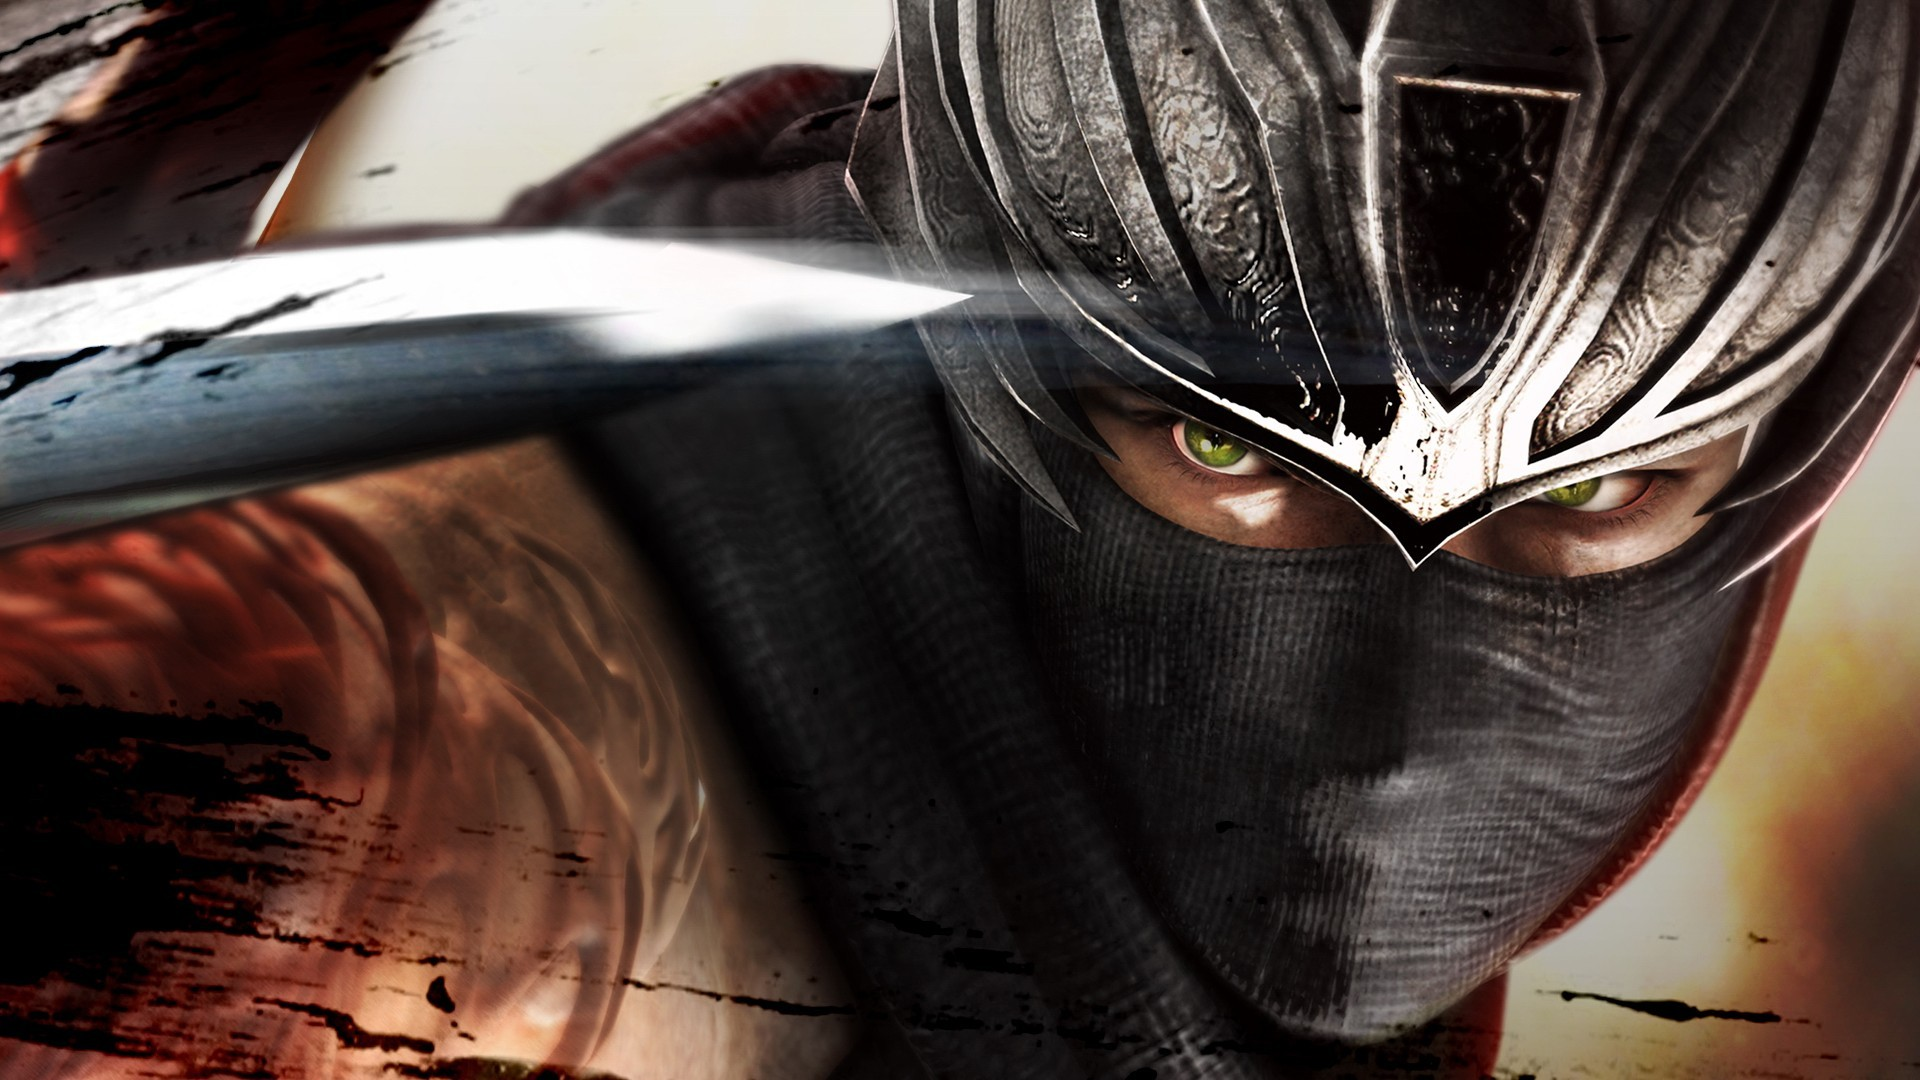 ninja gaiden wallpapers for desktop - photo #17